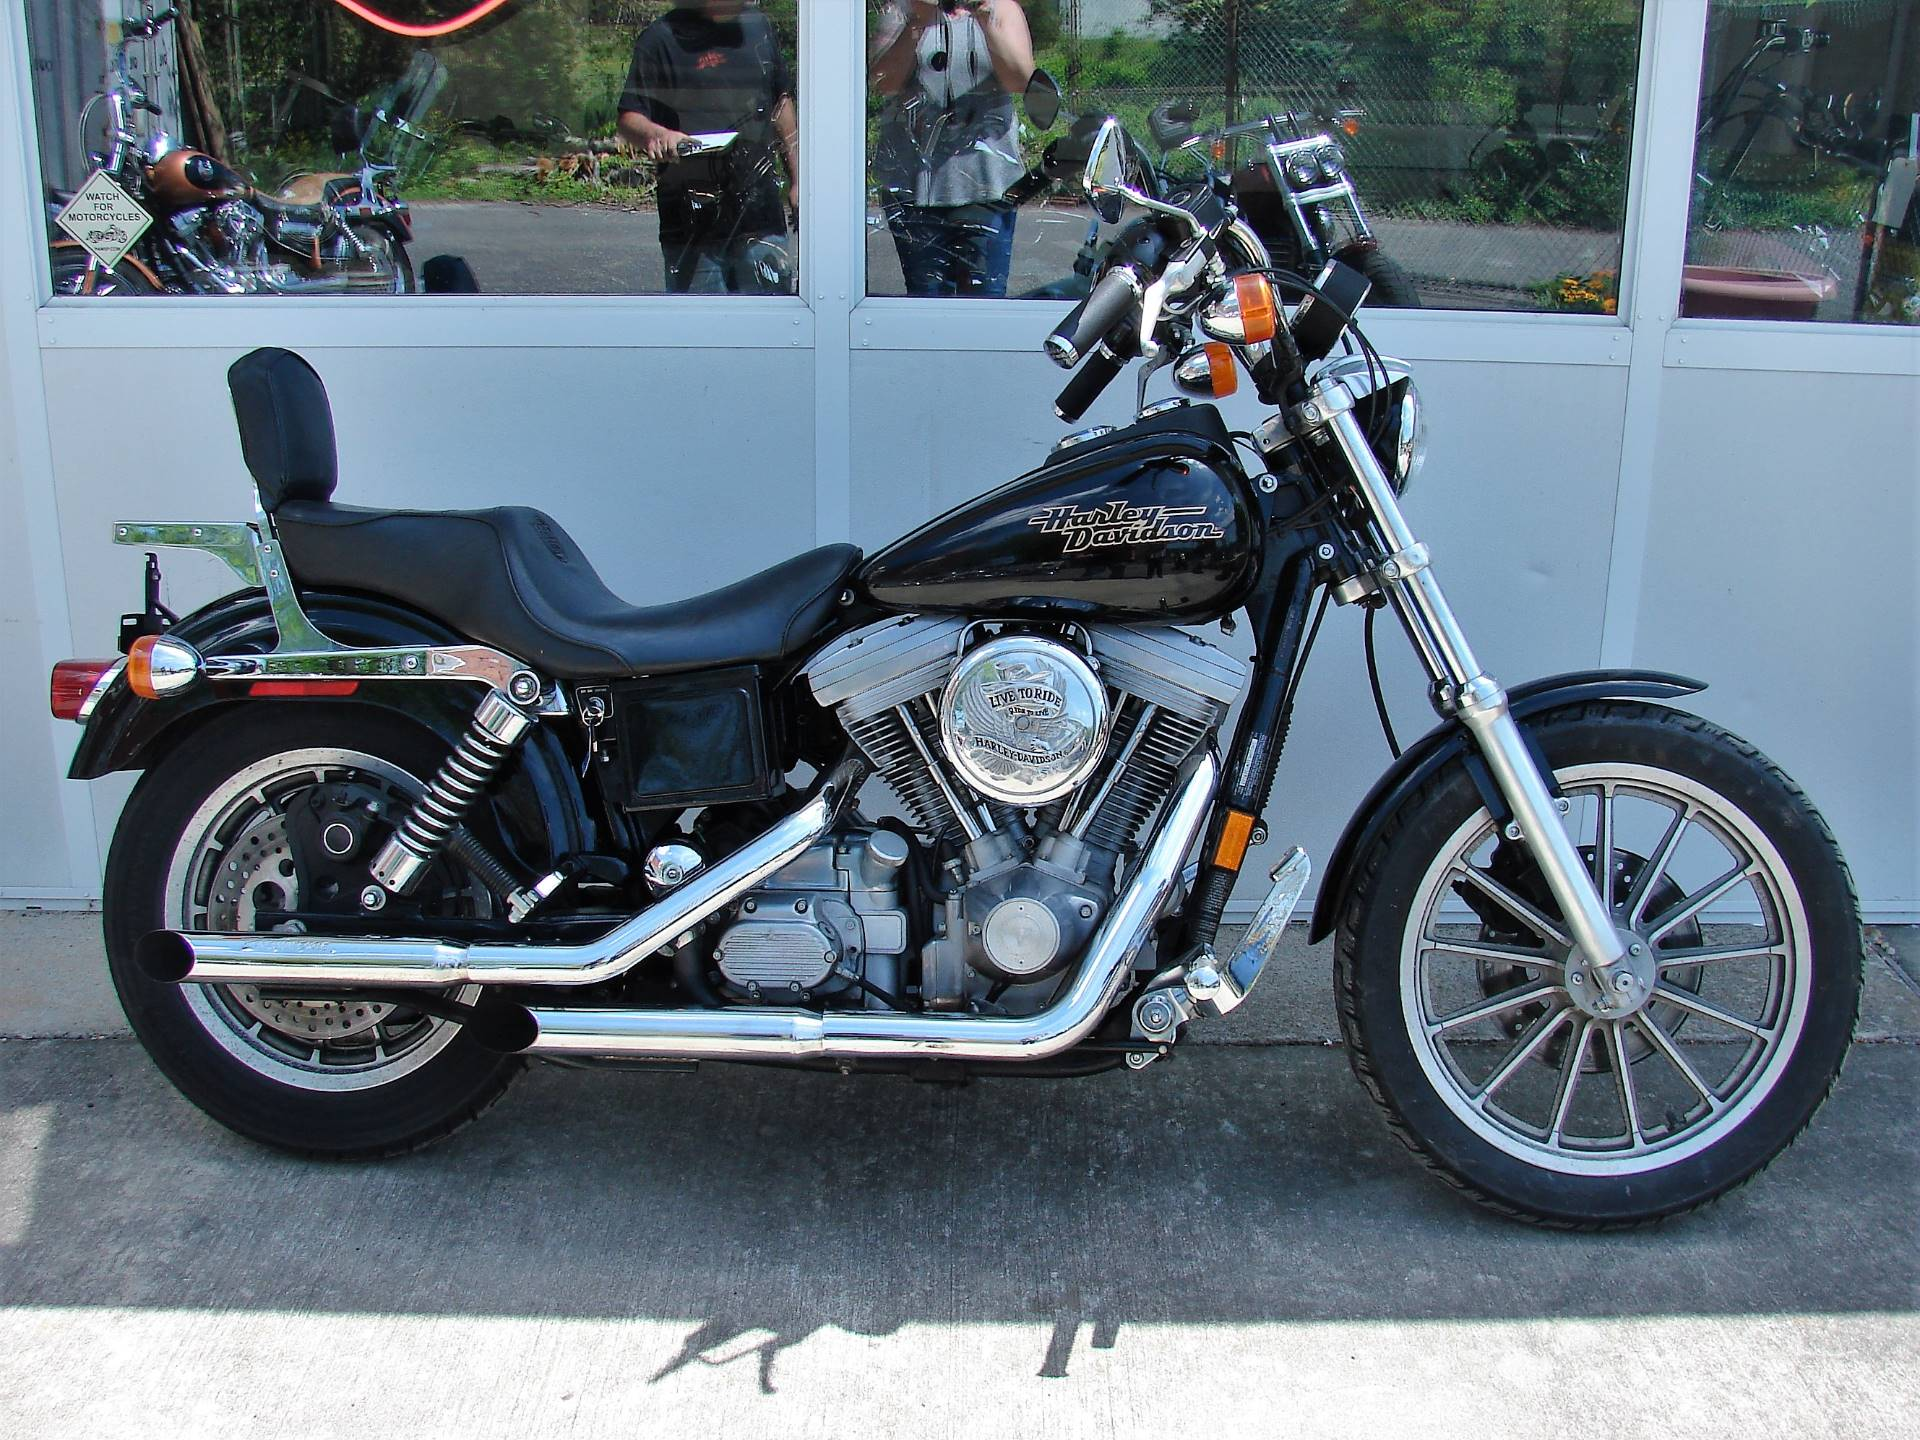 1998 Harley-Davidson Dyna Super Glide  (Black)  w/ Low Miles! in Williamstown, New Jersey - Photo 10